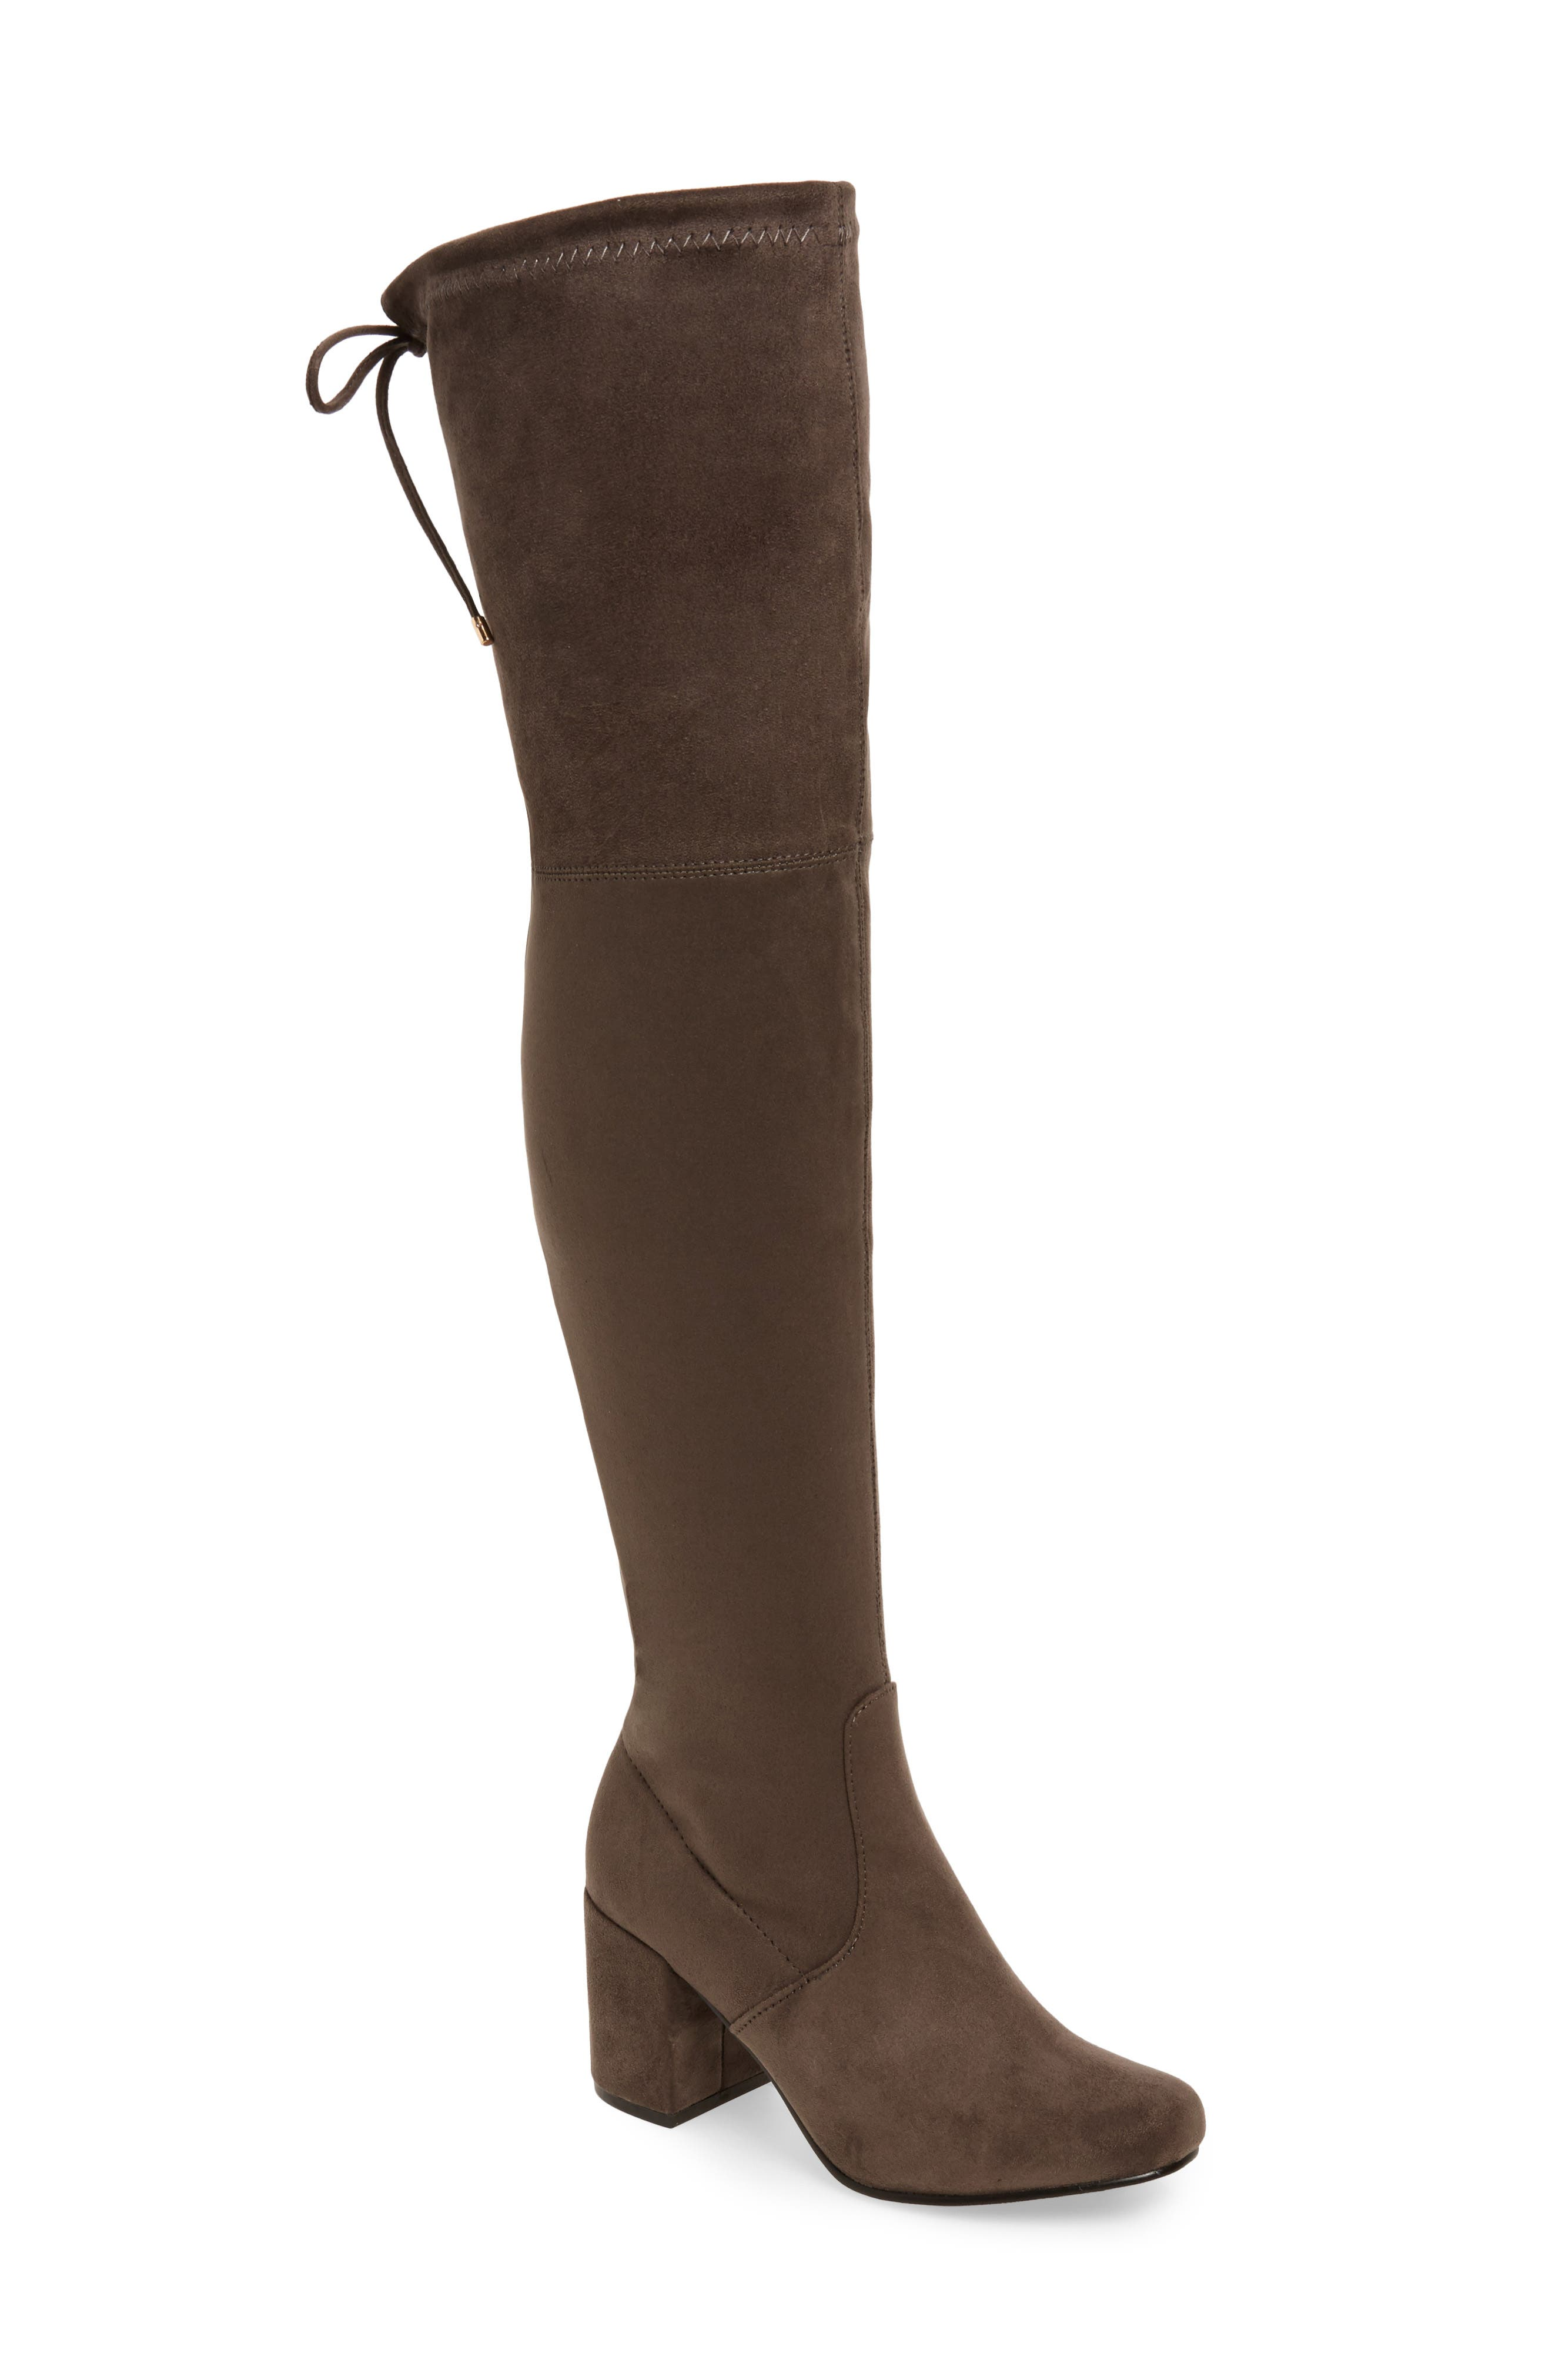 Alternate Image 1 Selected - Very Volatile Heartbeat Over the Knee Boot (Women)